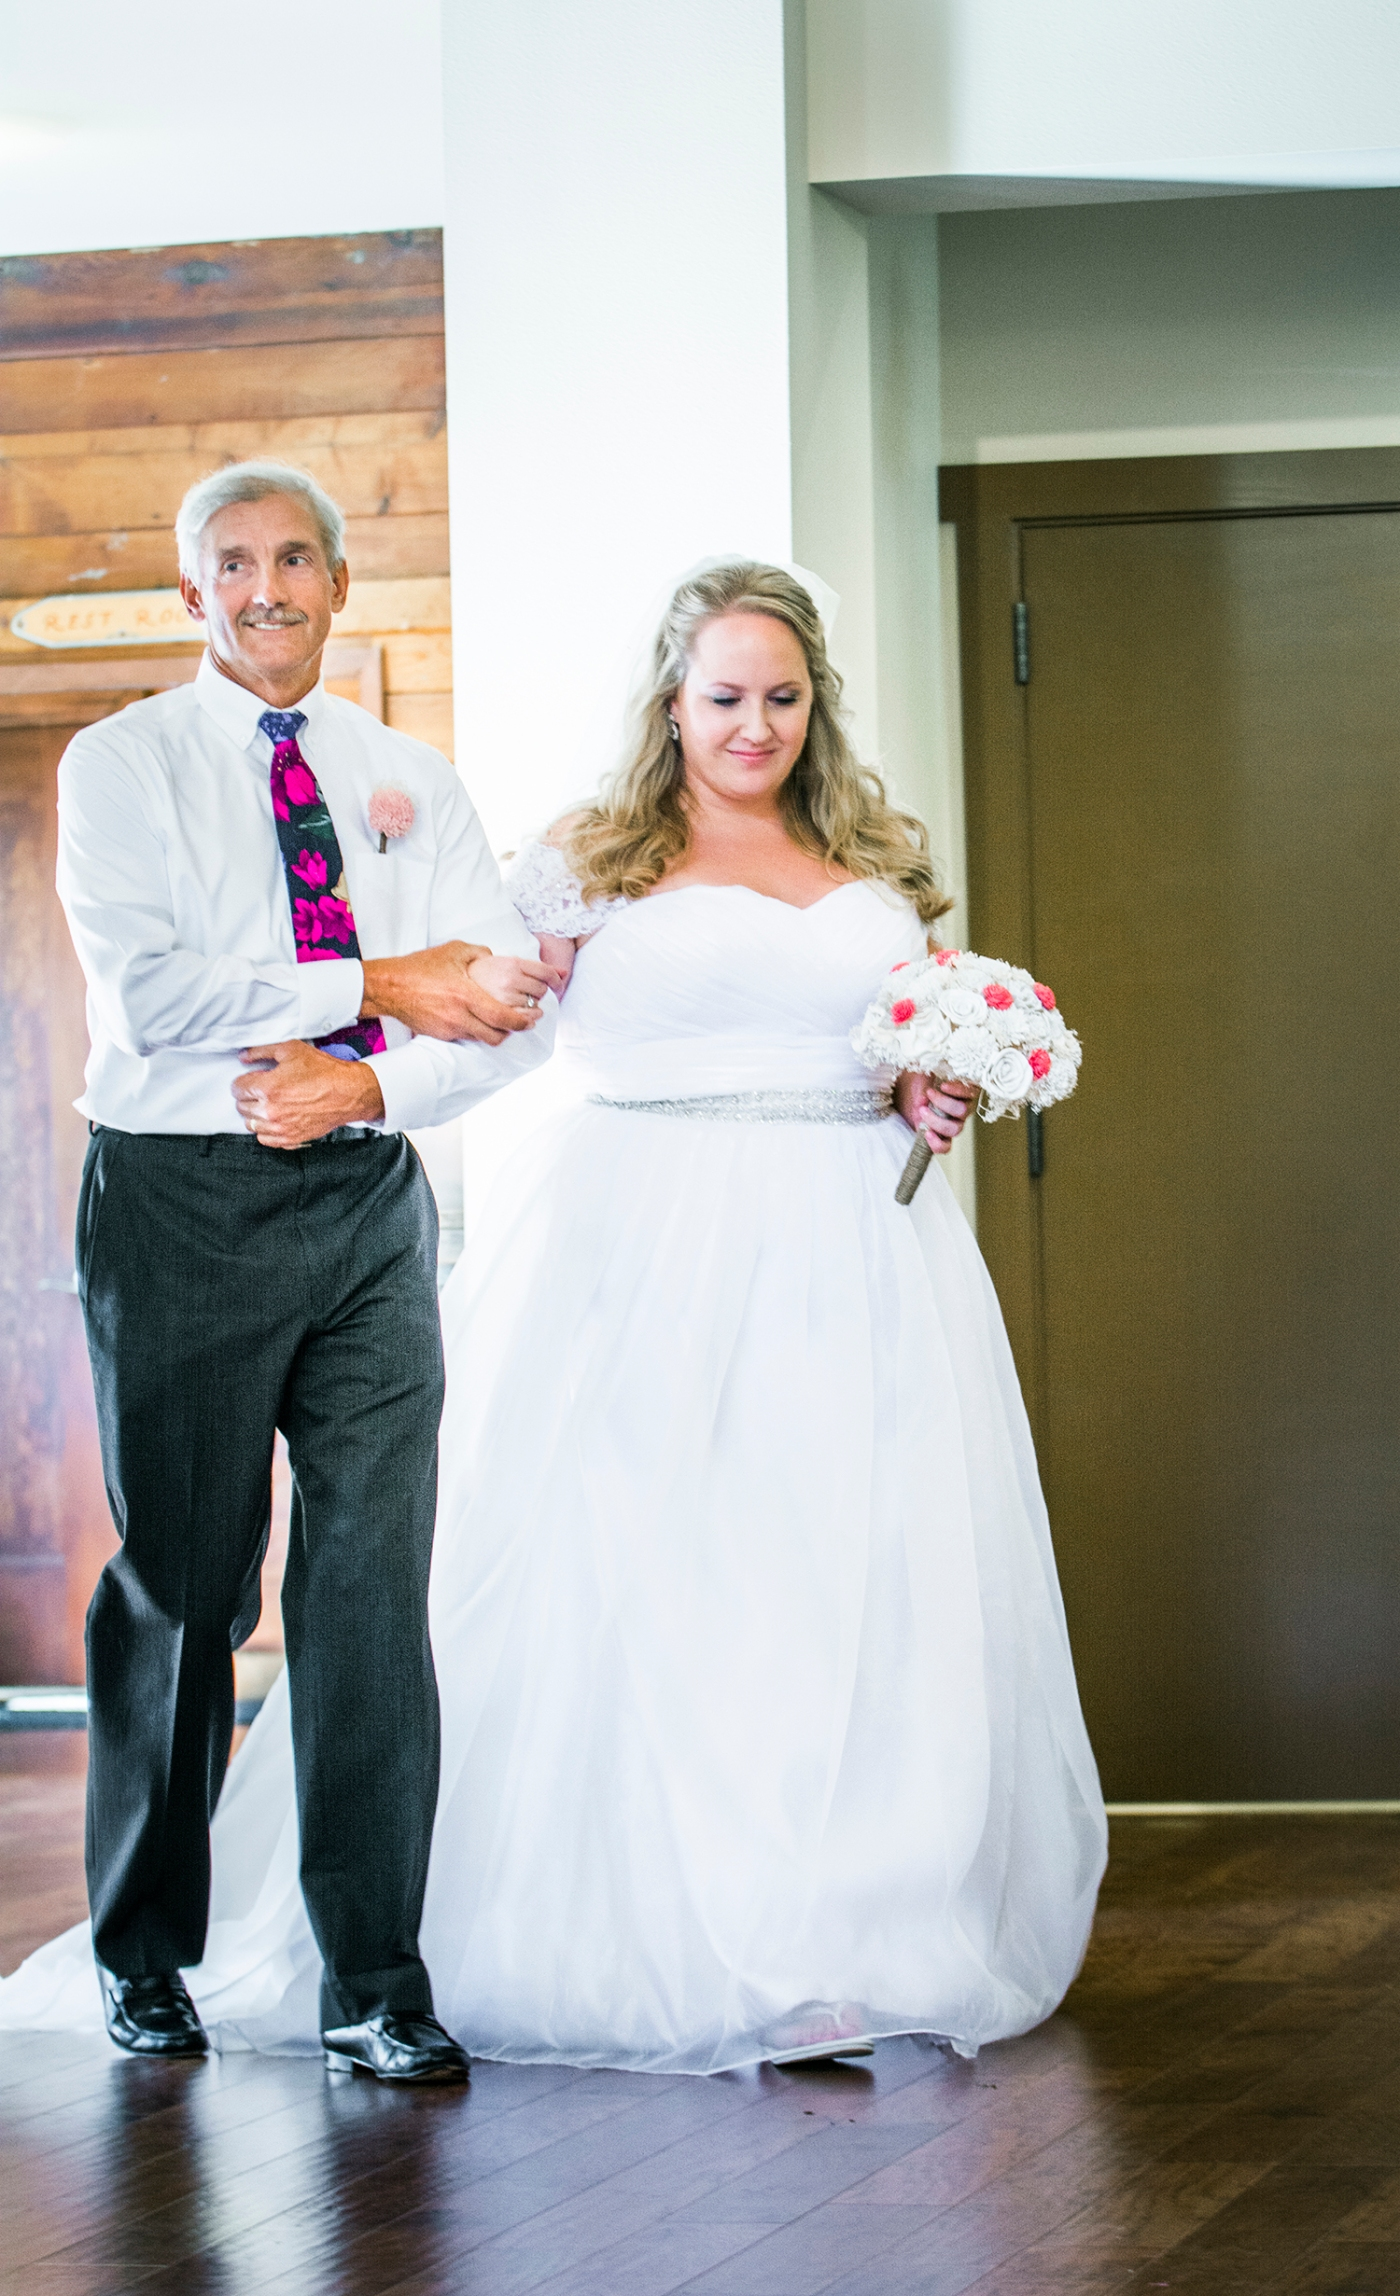 Jane_S_photography_Katie_and_Steve_2016_Des_Moines_Marina_Wedding_JS7_9286